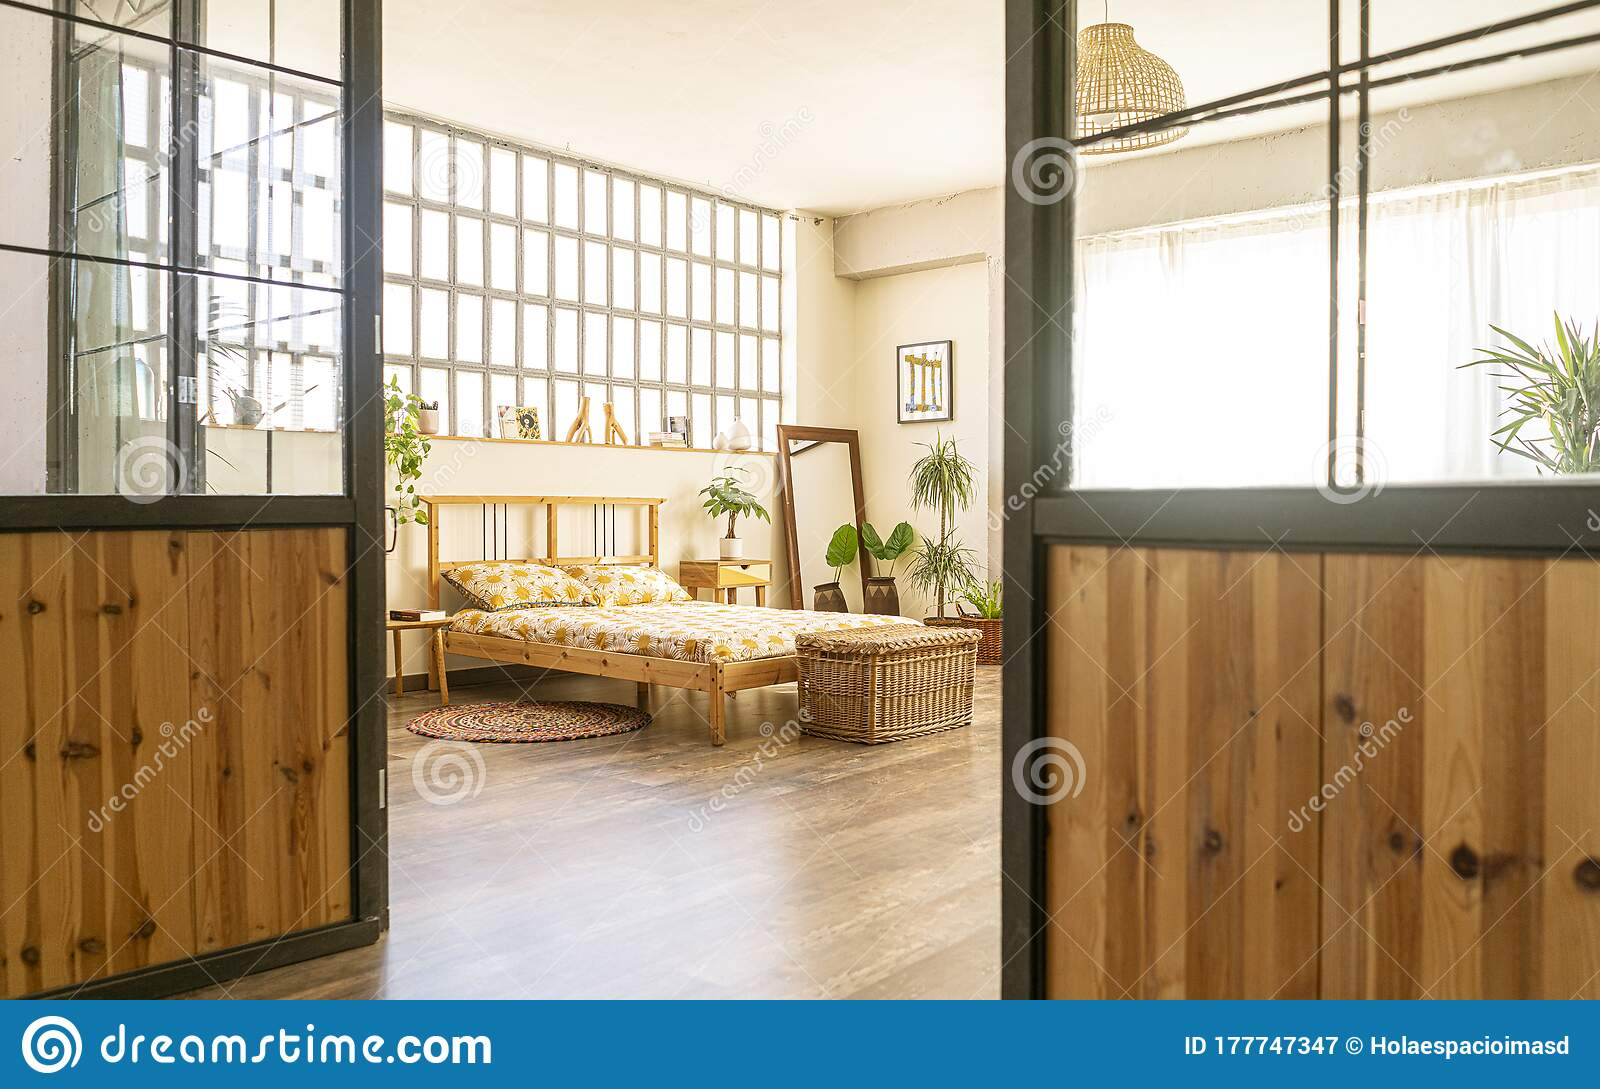 Home Interior Design Decoration Beaufitul Bedroom With Wooden Furniture And Large Windows View Through The Door Stock Image Image Of Apartment Open 177747347